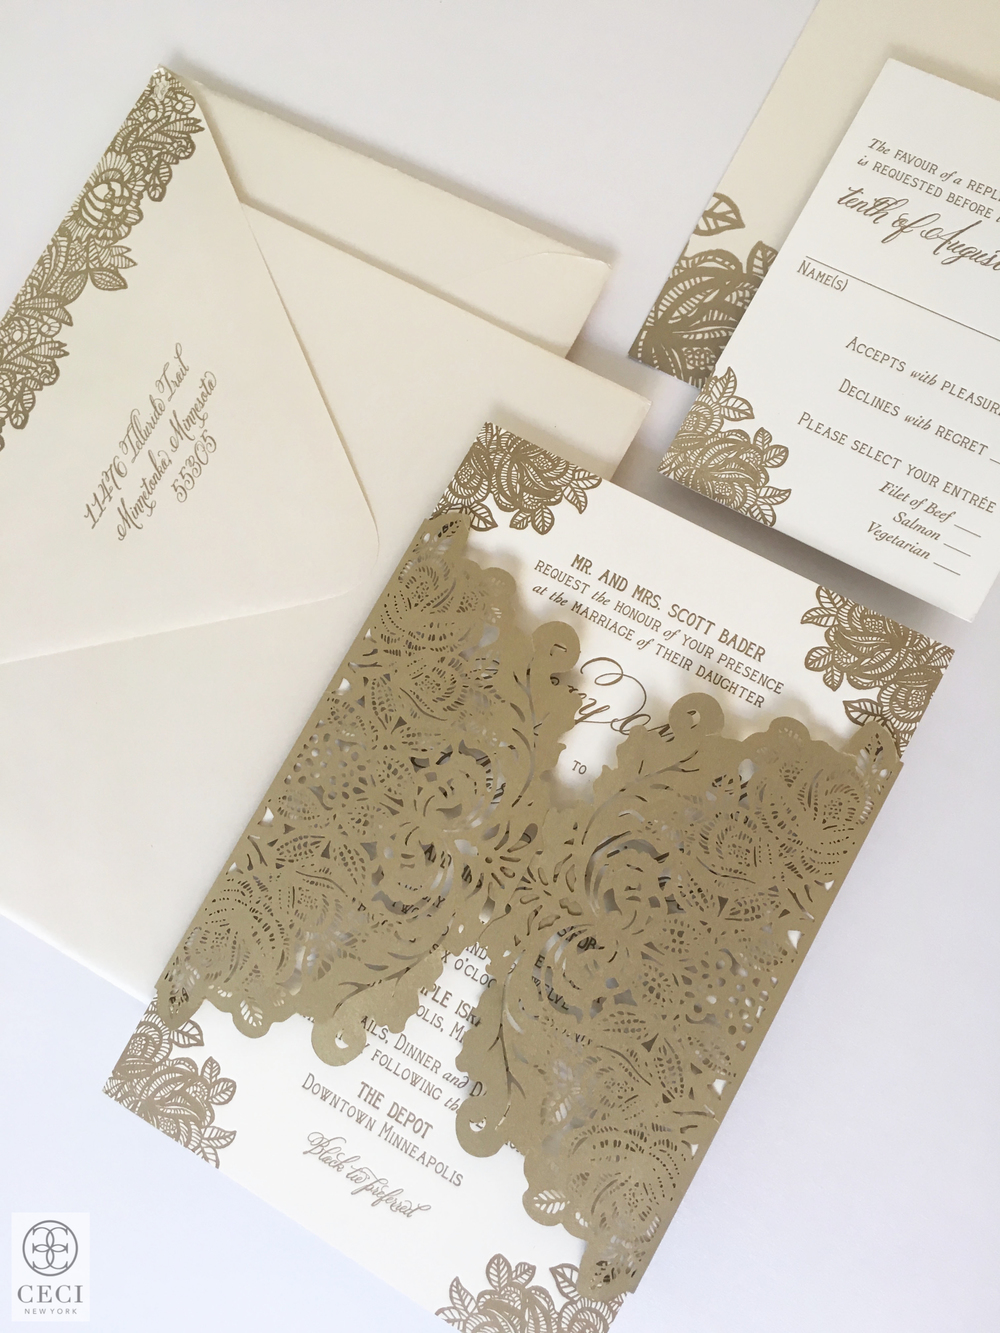 Ceci_New_York_Ceci_Style_Ceci_Johnson_Luxury_Lifestyle_Floral_Lace_Wedding_Letterpress_Inspiration_Design_Custom_Couture_Personalized_Invitations_-12.jpg